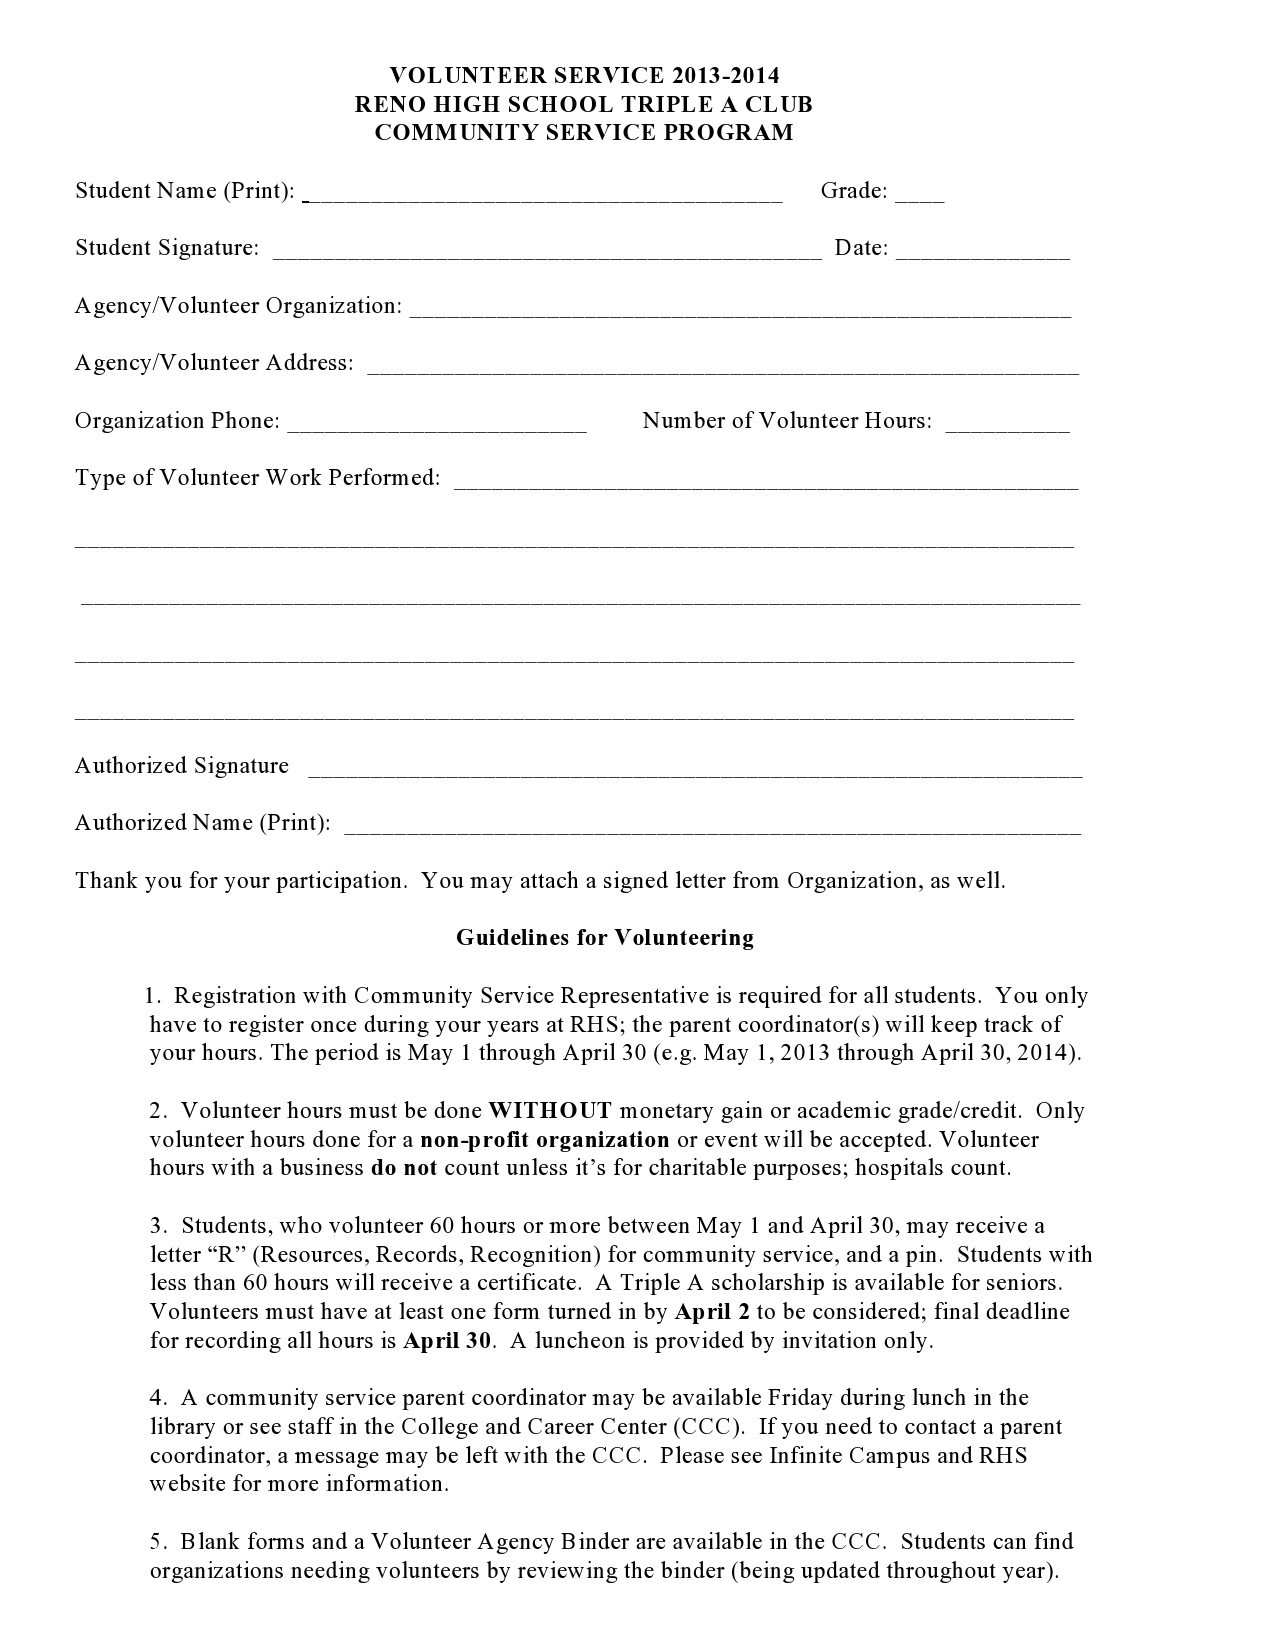 44 Printable Community Service Forms Ms Word Templatelab